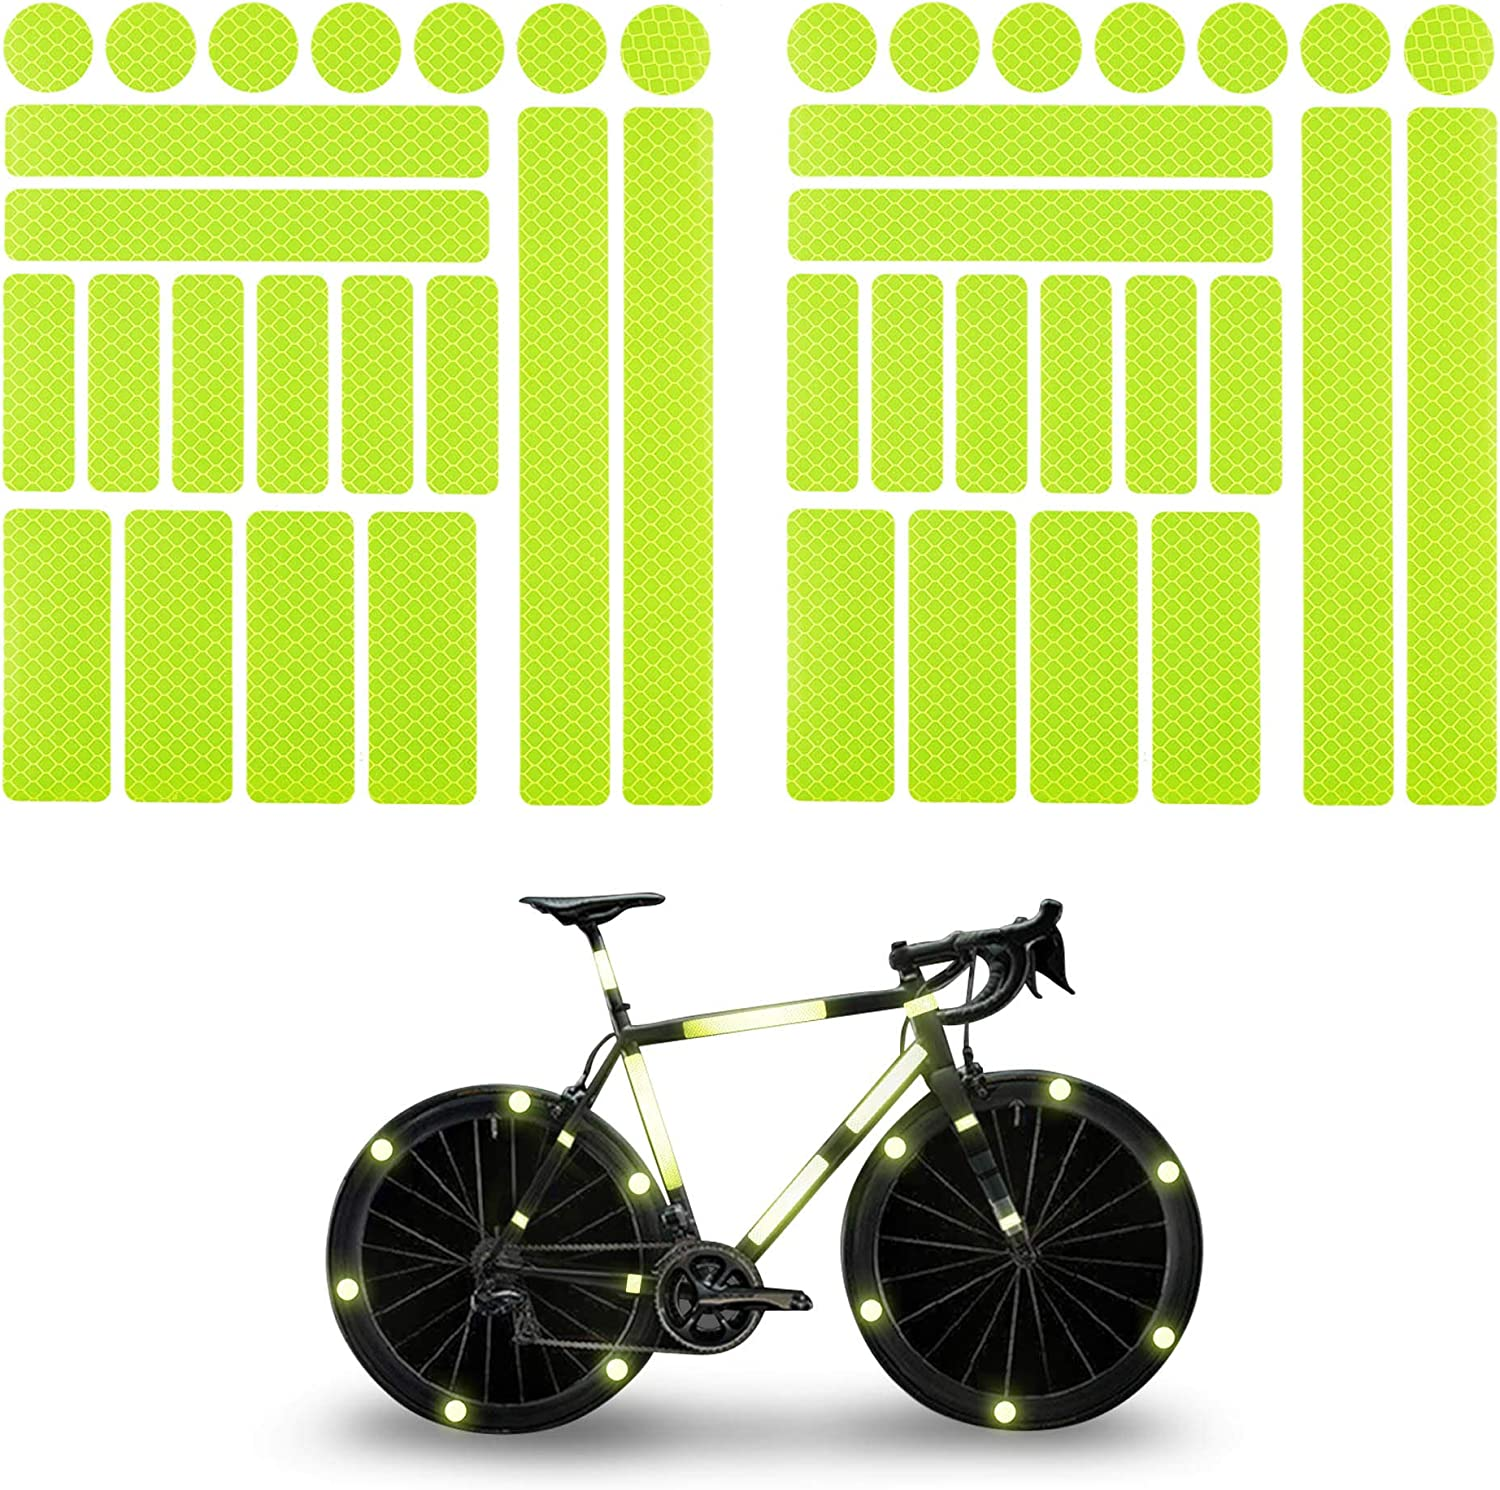 Reflective Stickers for Hard Surfaces Motorcycle Strollers TOMALL Reflective Stickers for Helmet Bicycle Bicycle Reflective Tape Bicycles Wheelchairs Helmets